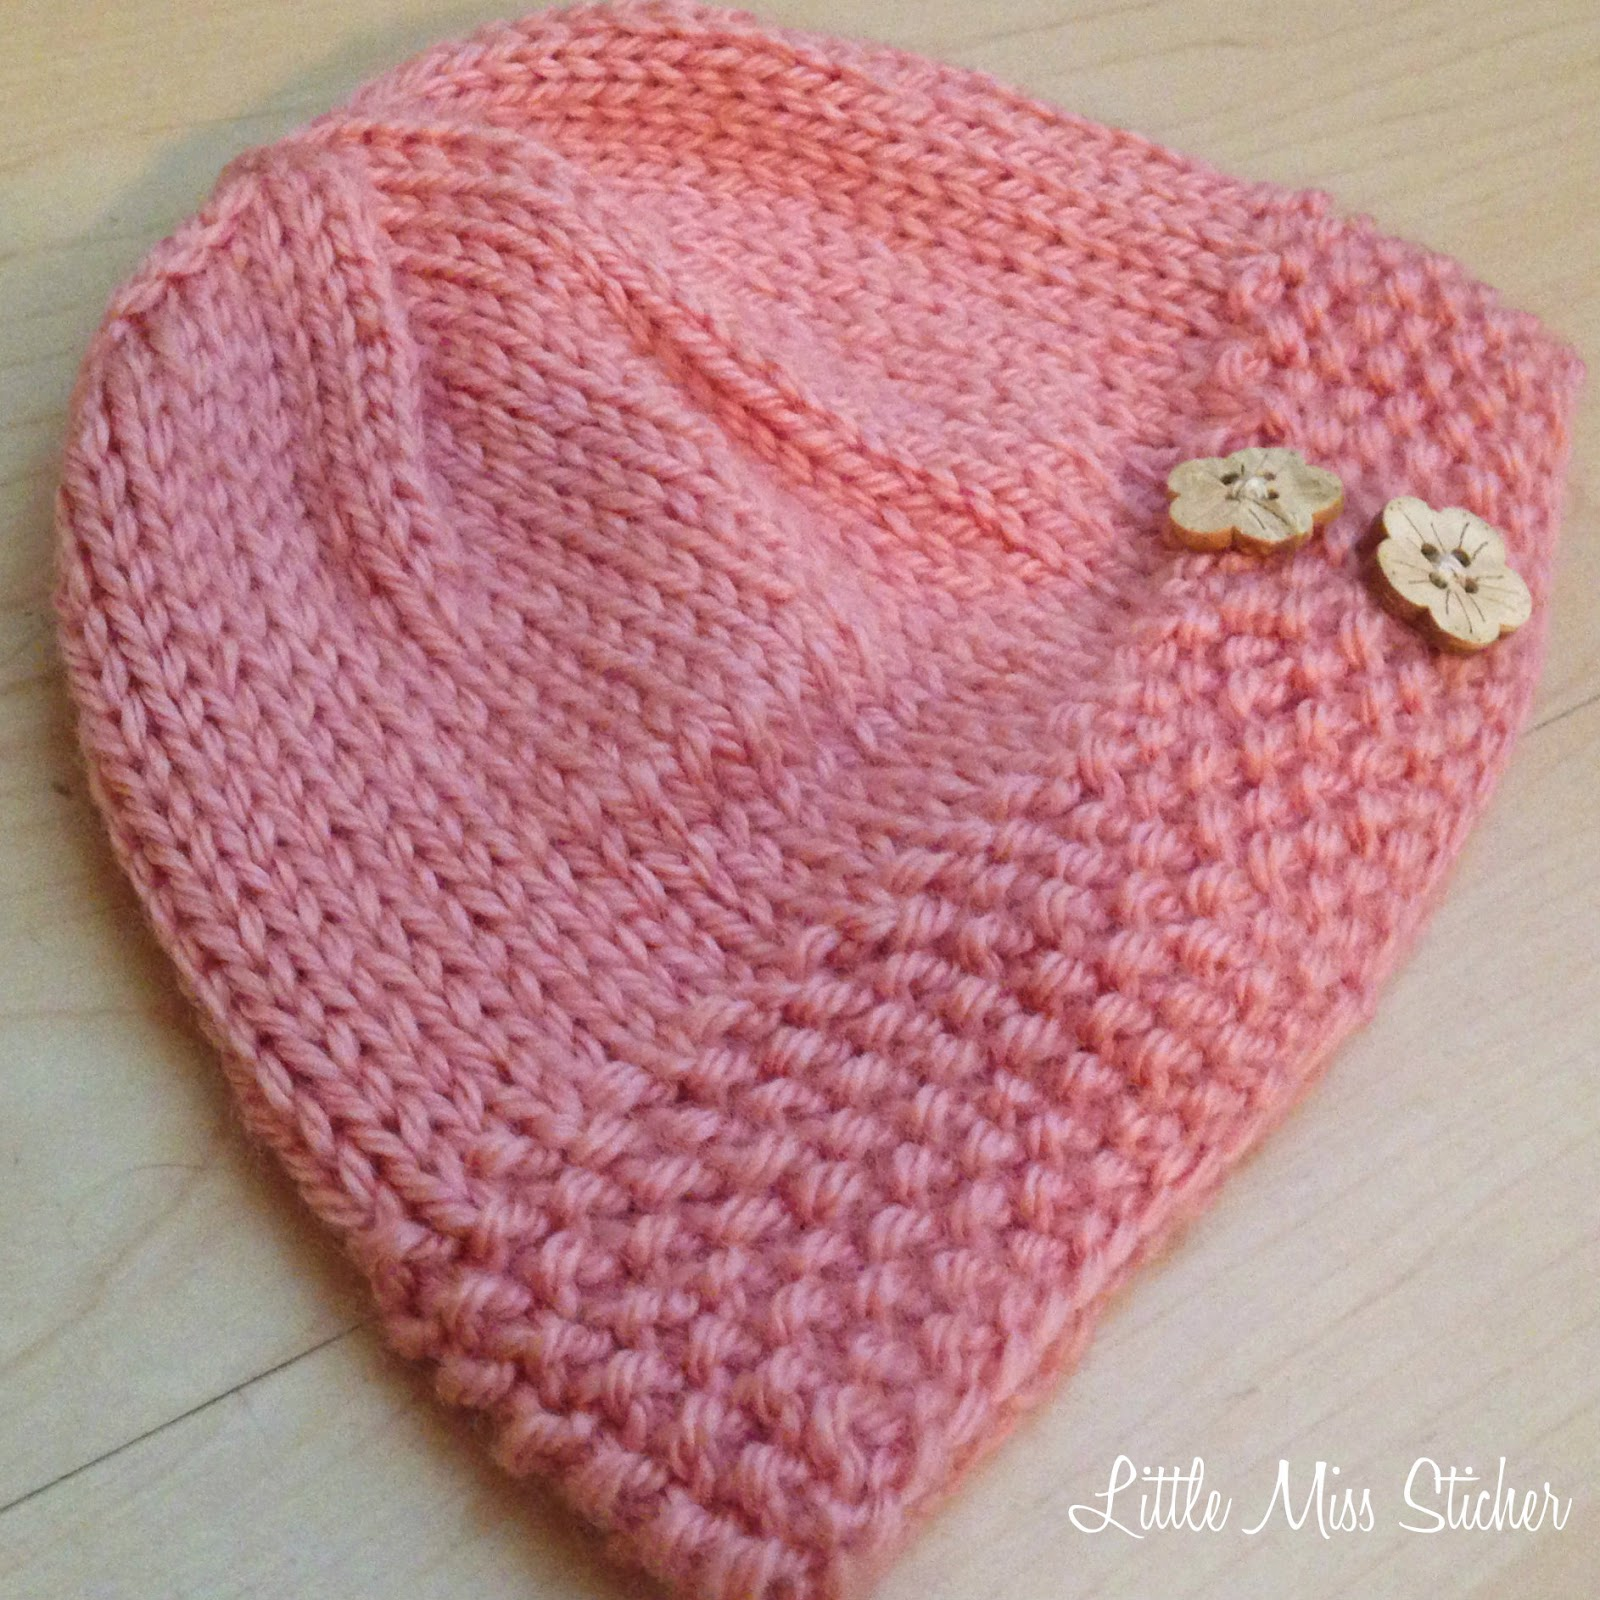 Free Knitting Pattern Beanie Easy : Little Miss Stitcher: Bitty Beanie Free Knit Pattern